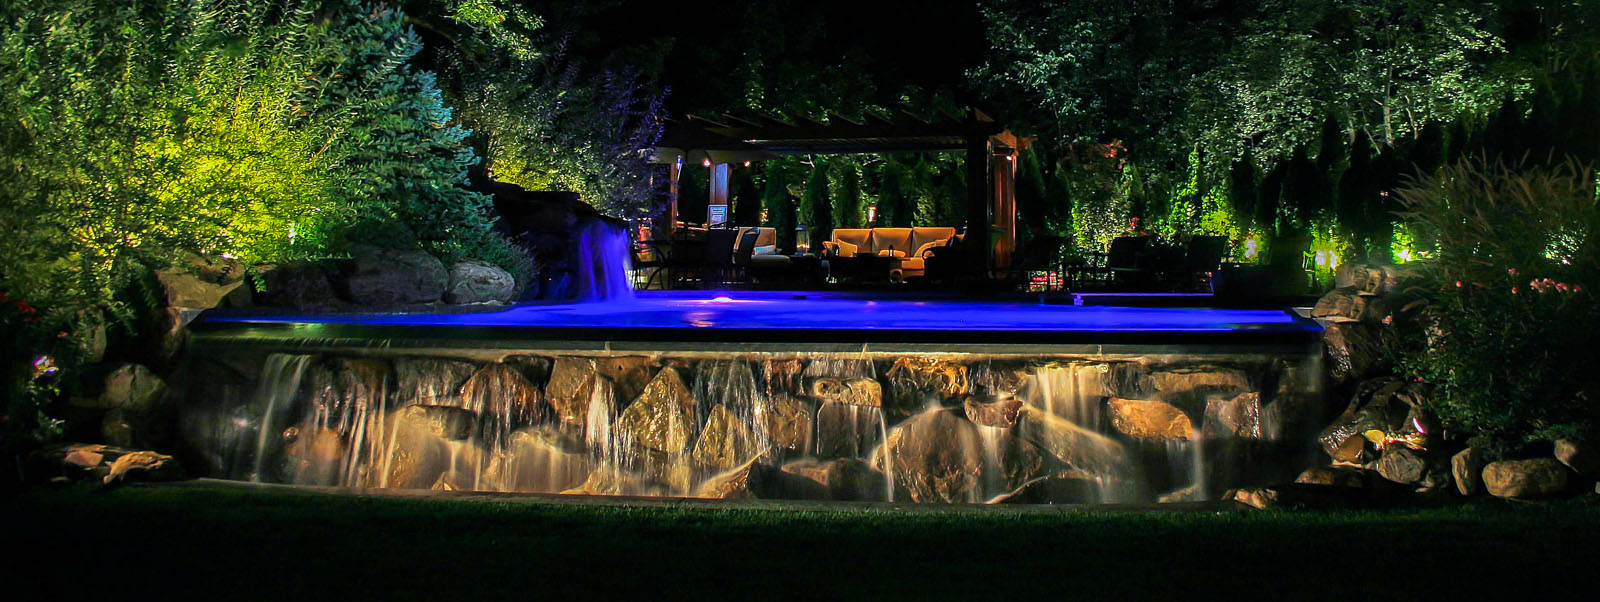 Landscape lighting designs by clc landscape design for Deer lake swimming pool schedule